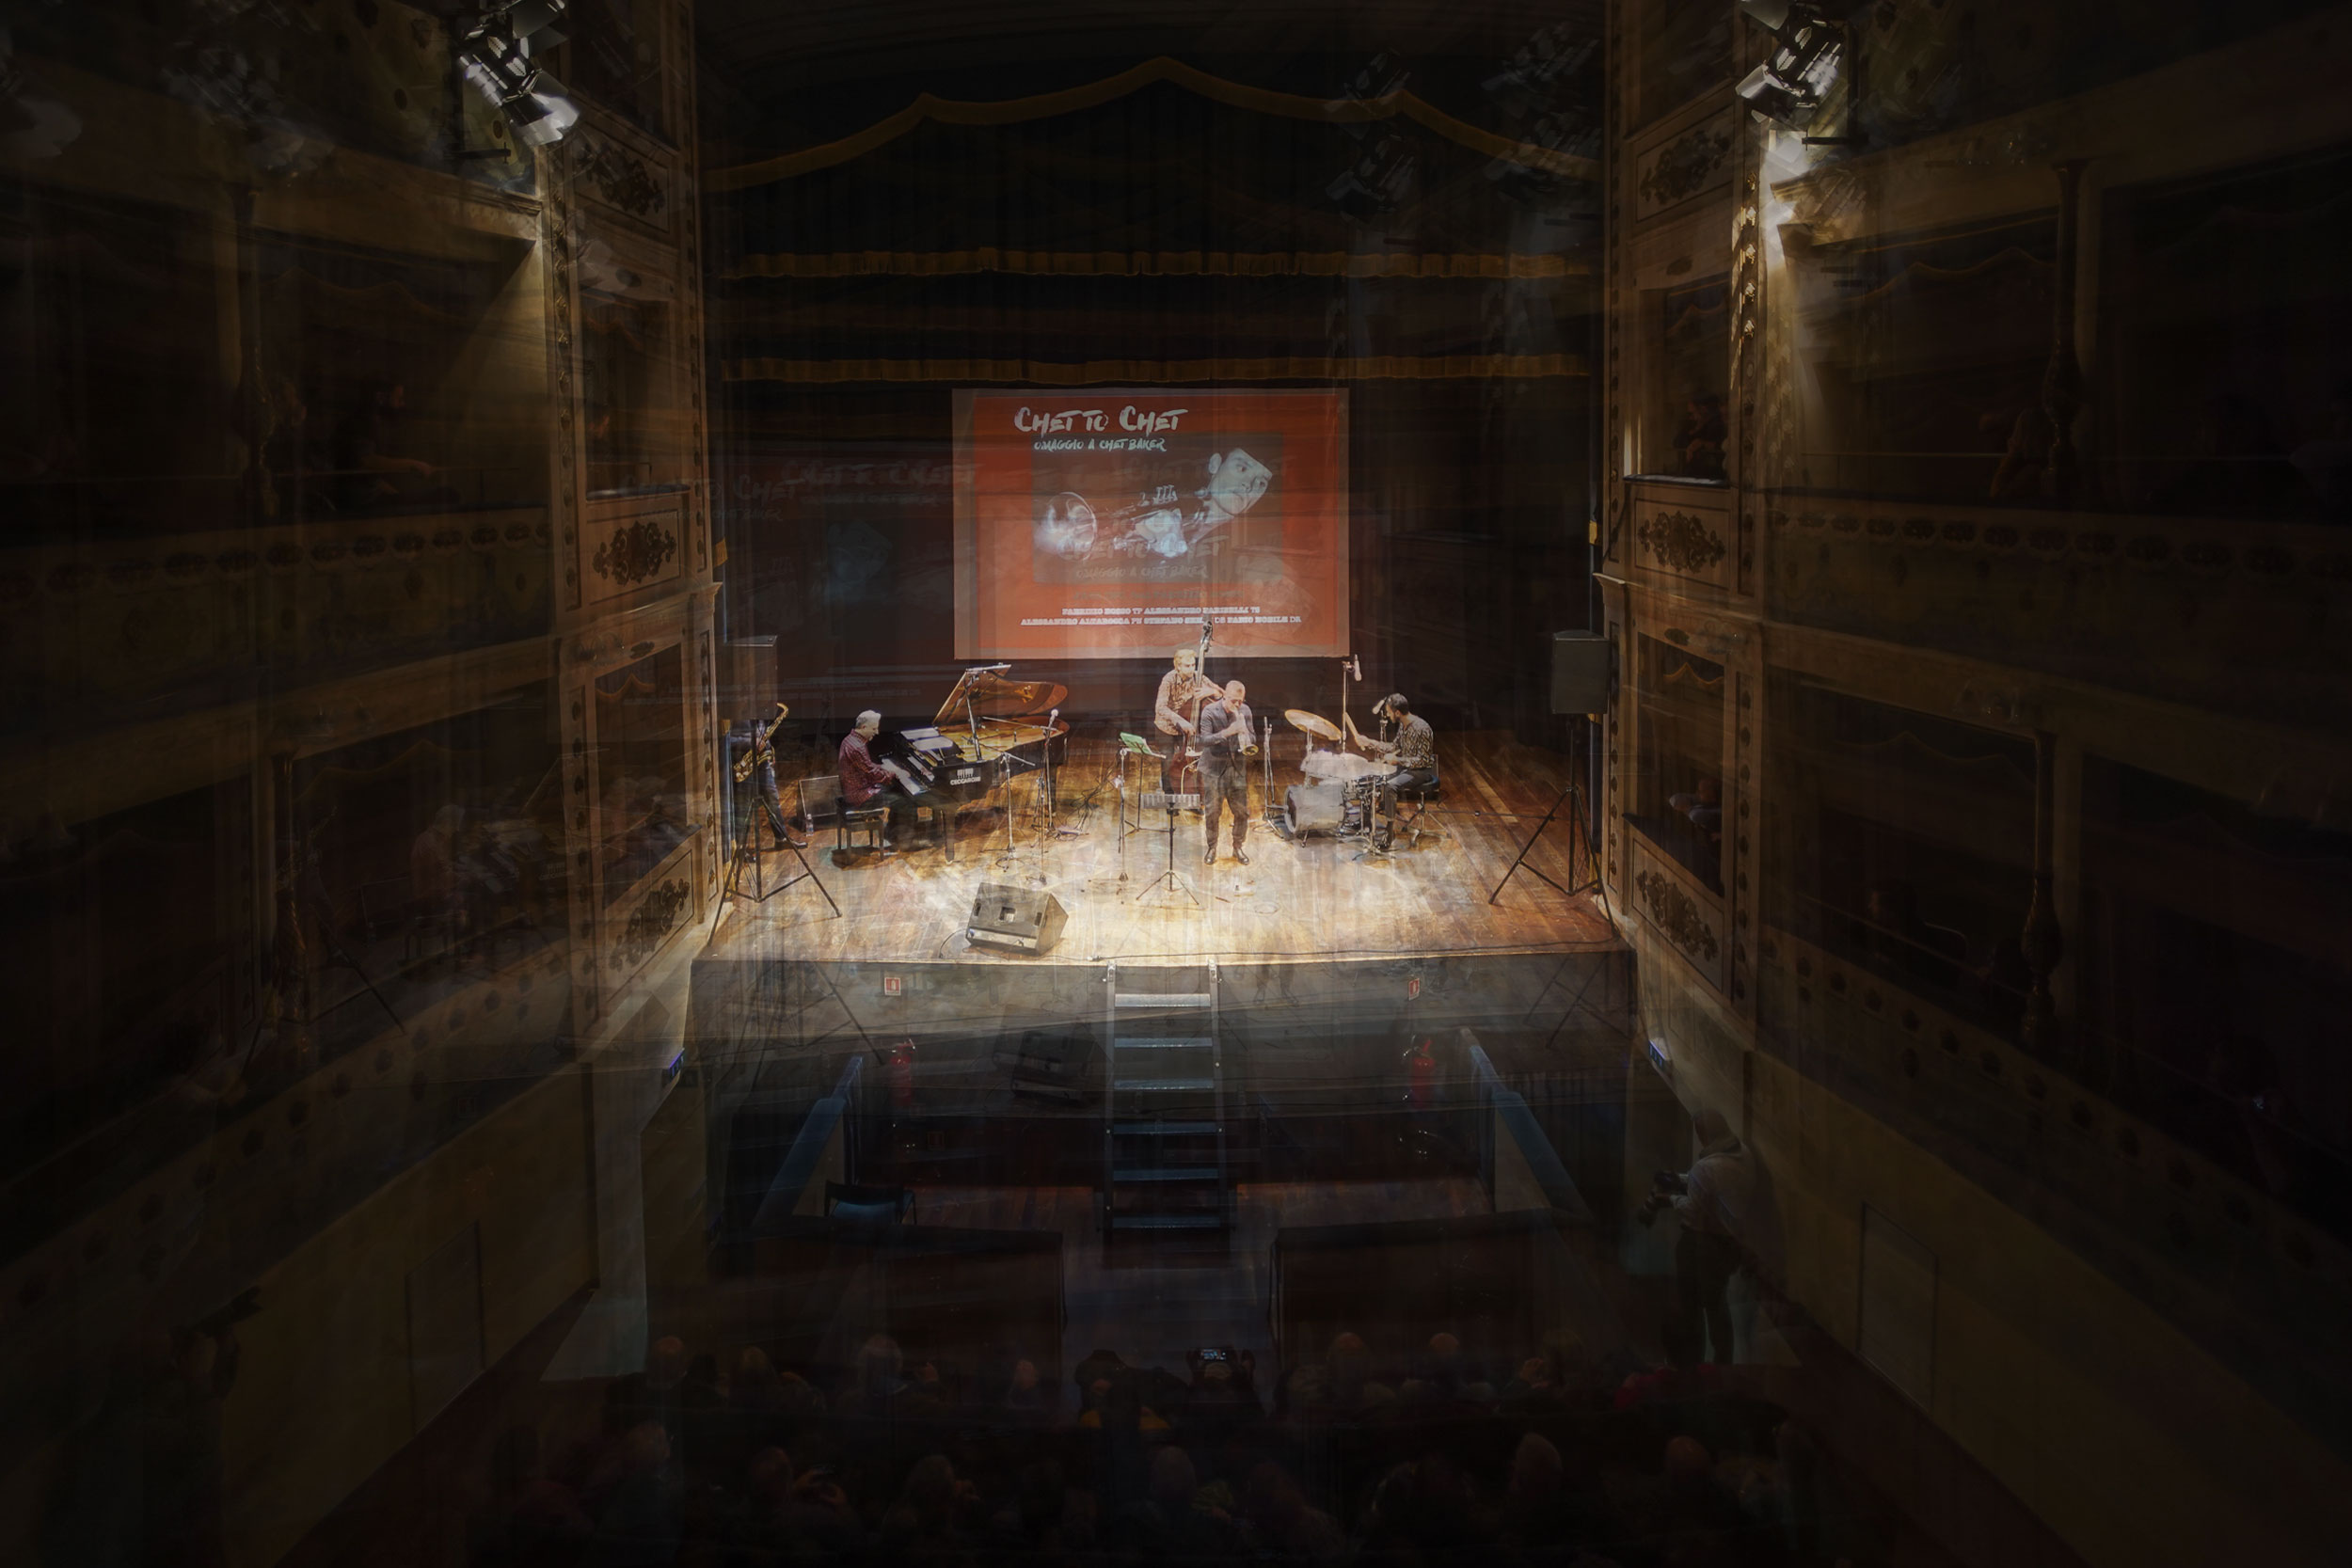 A night at the theatre – Chet to Chet FOTO